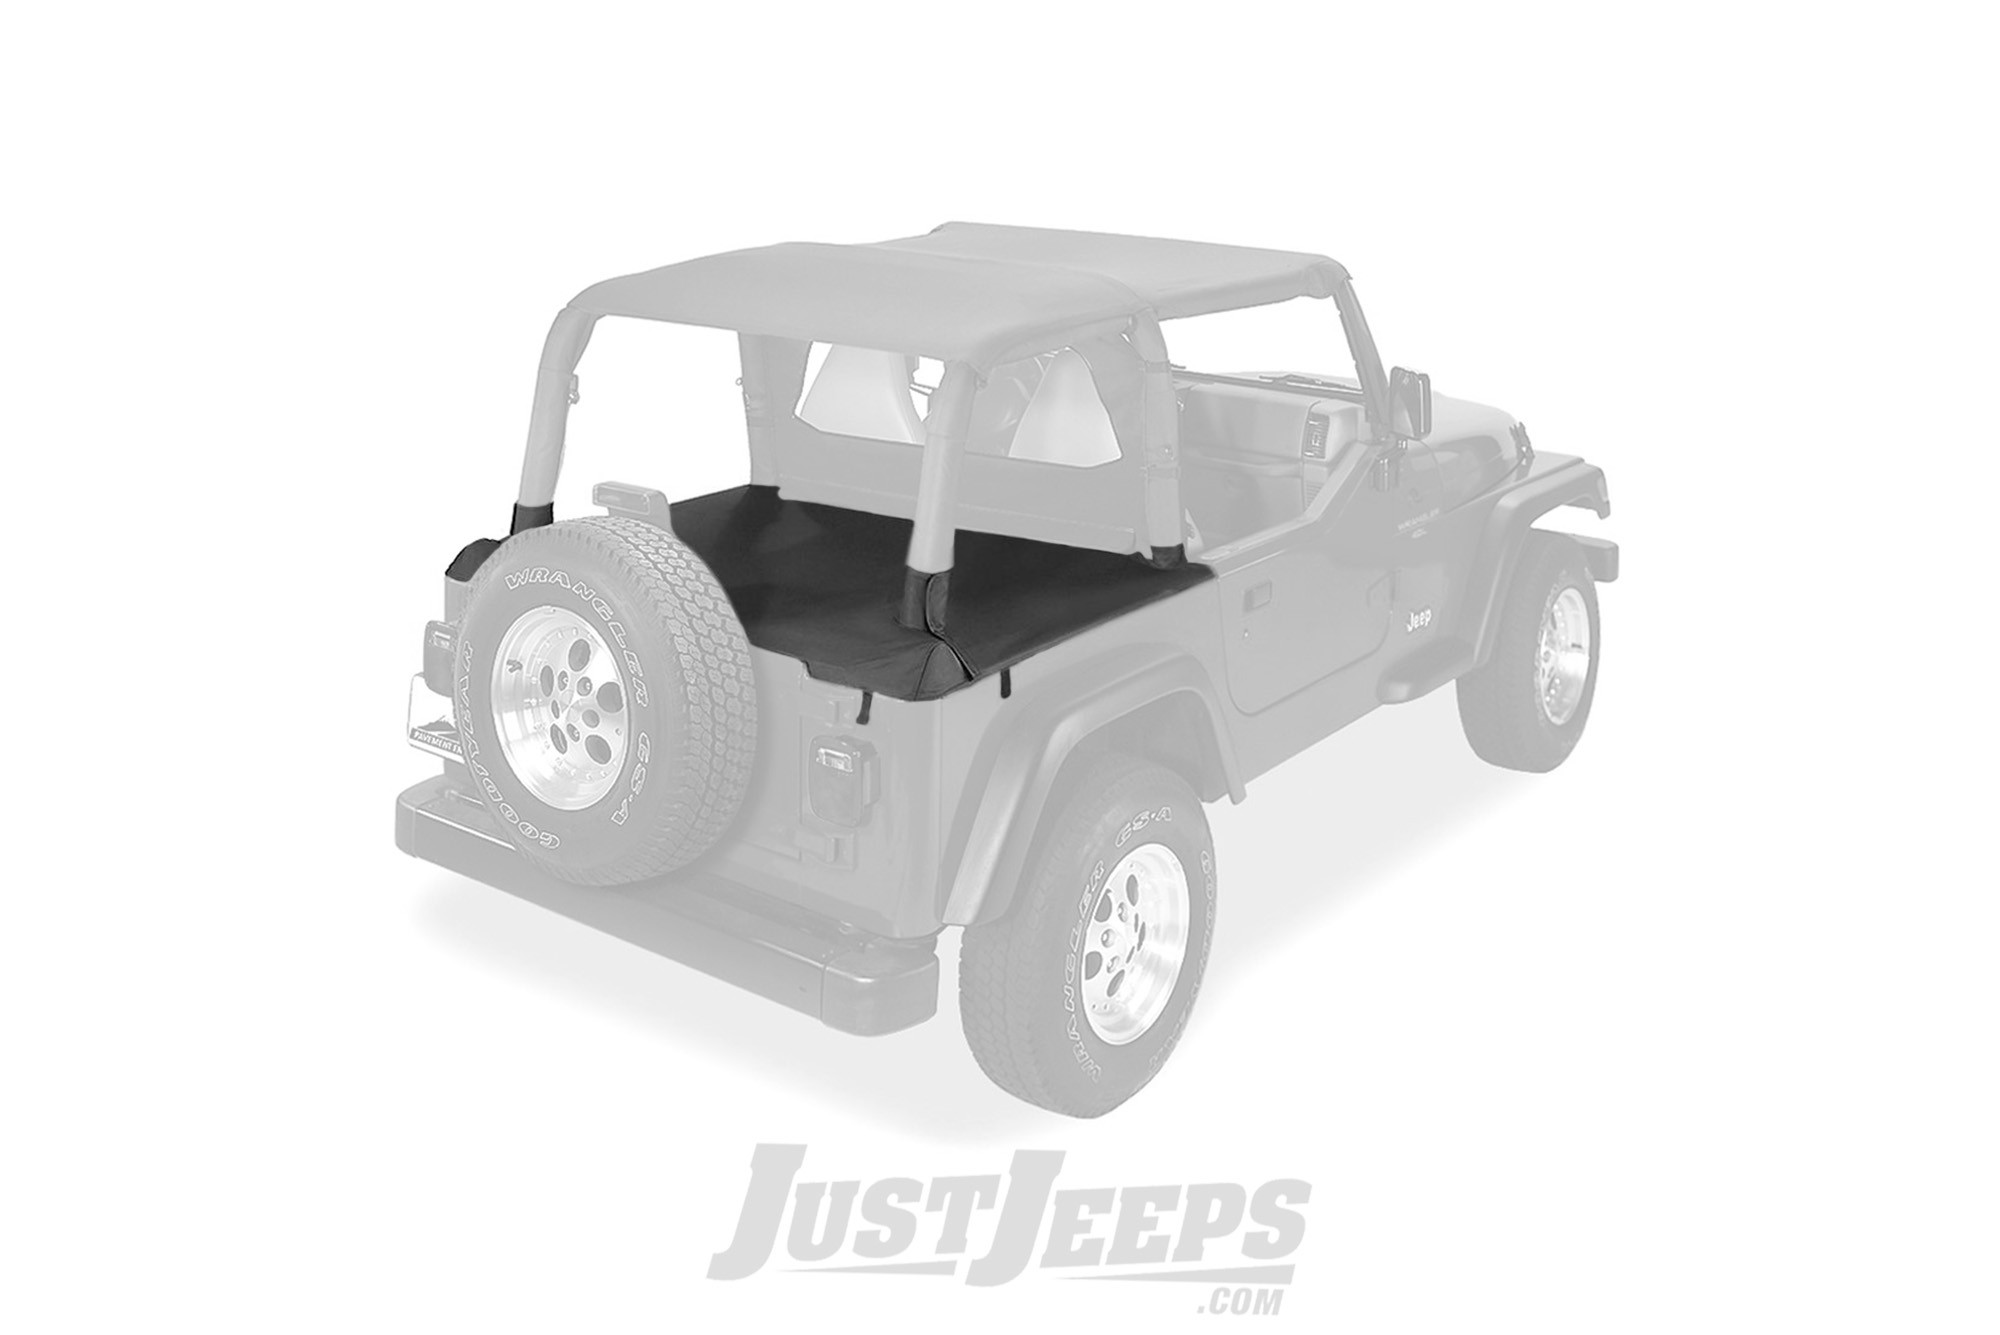 Pavement Ends Cargo Tonneau Cover In Black Denim For 1997-02 Jeep Wrangler TJ With Factory Soft Top 41825-15